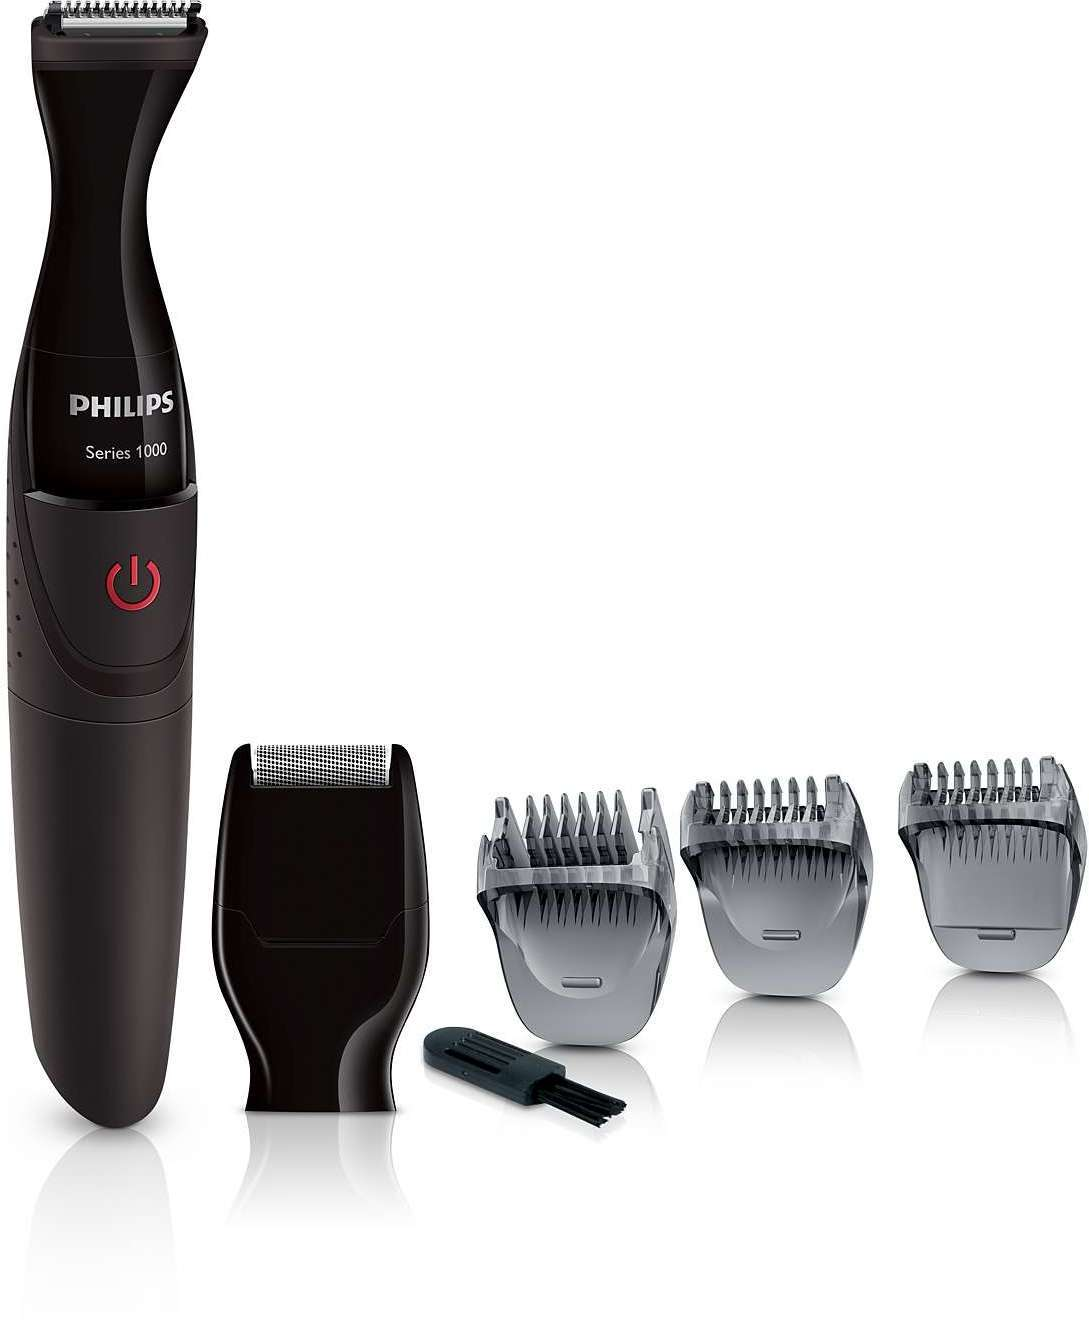 Philips MG1100/16 Multigroom Series 1000 Ultra-precise Beard Trimmer